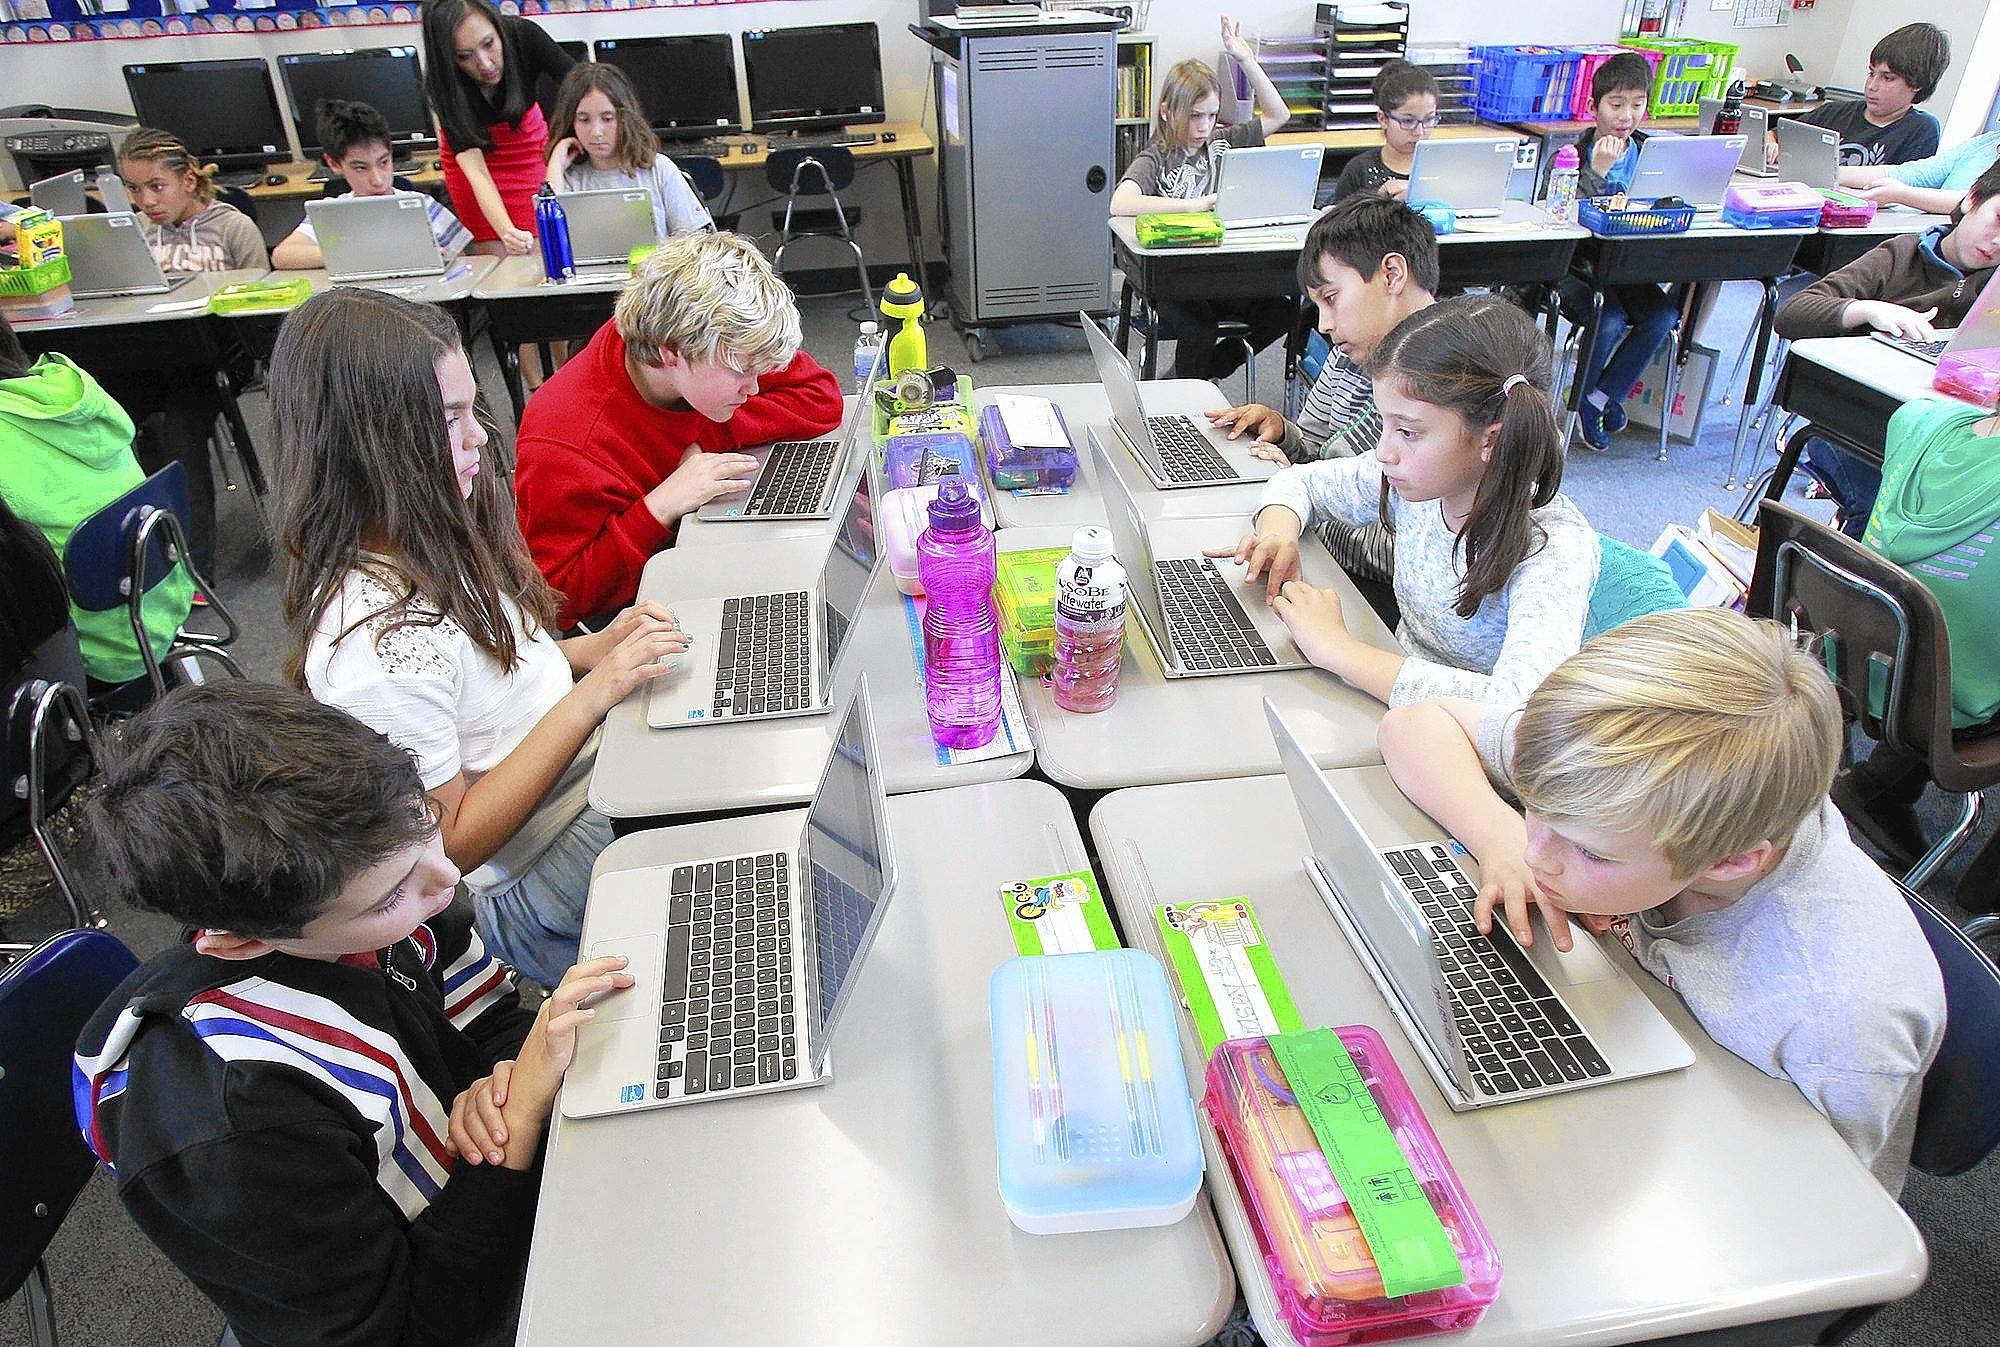 Students in Jennifer Chen's fifth-grade class work on Chromebooks during class at El Morro Elementary on Tuesday.